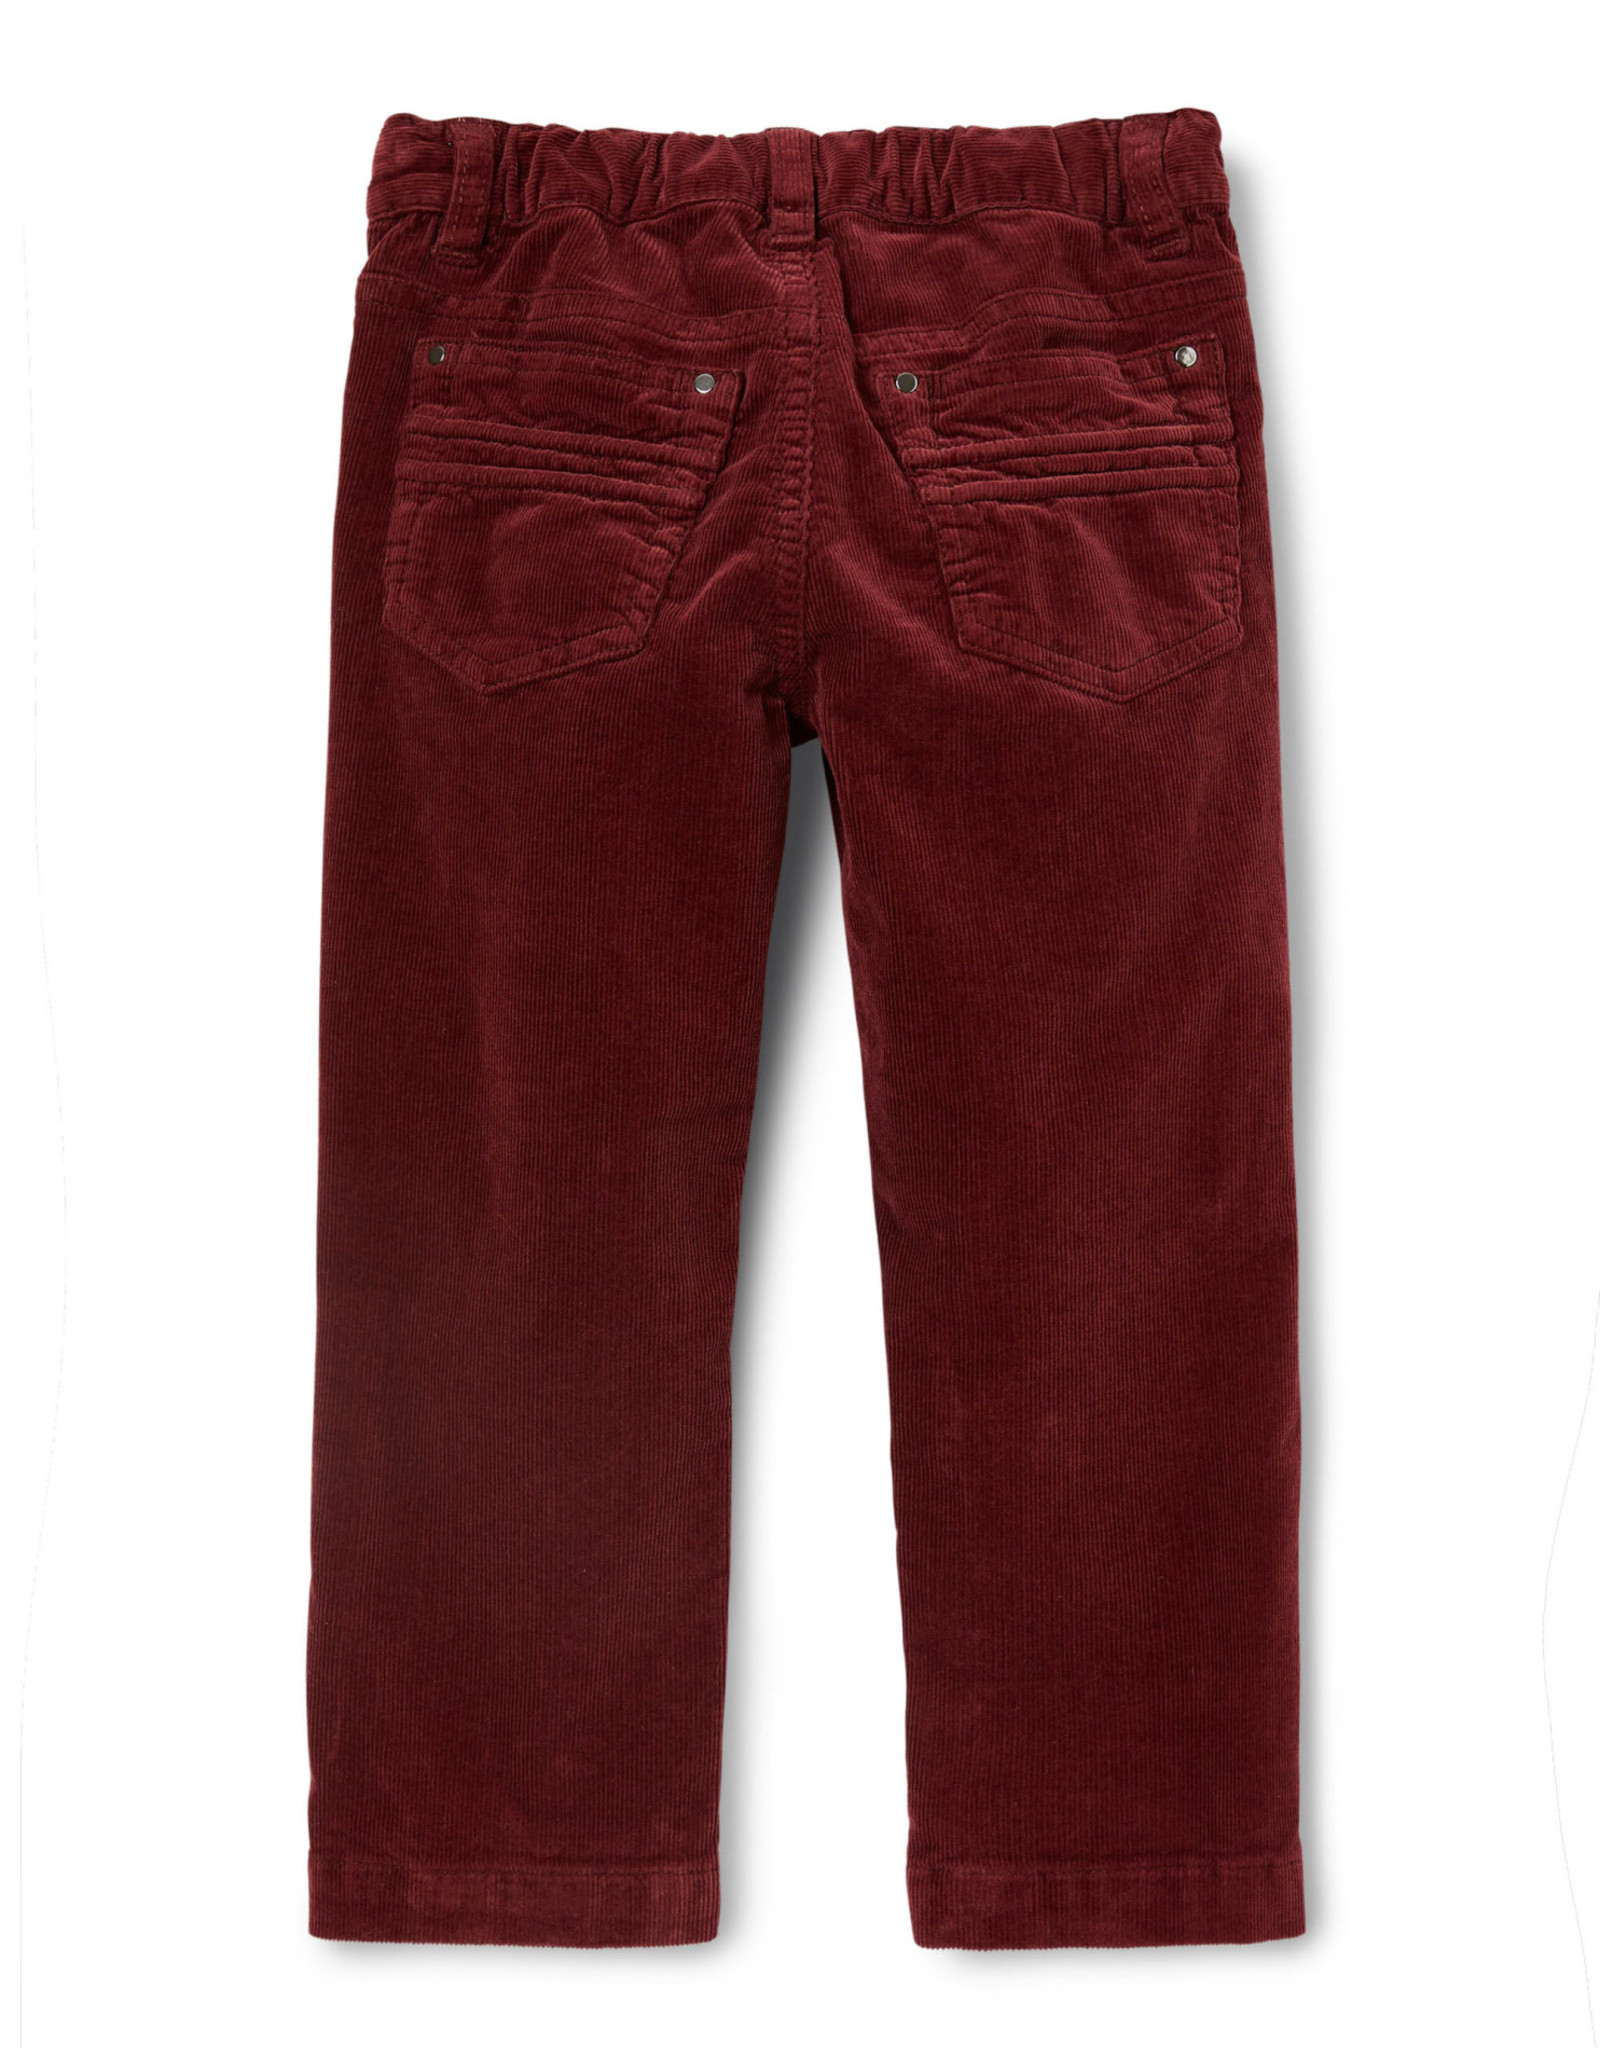 IL GUFO Trousers Burgundy